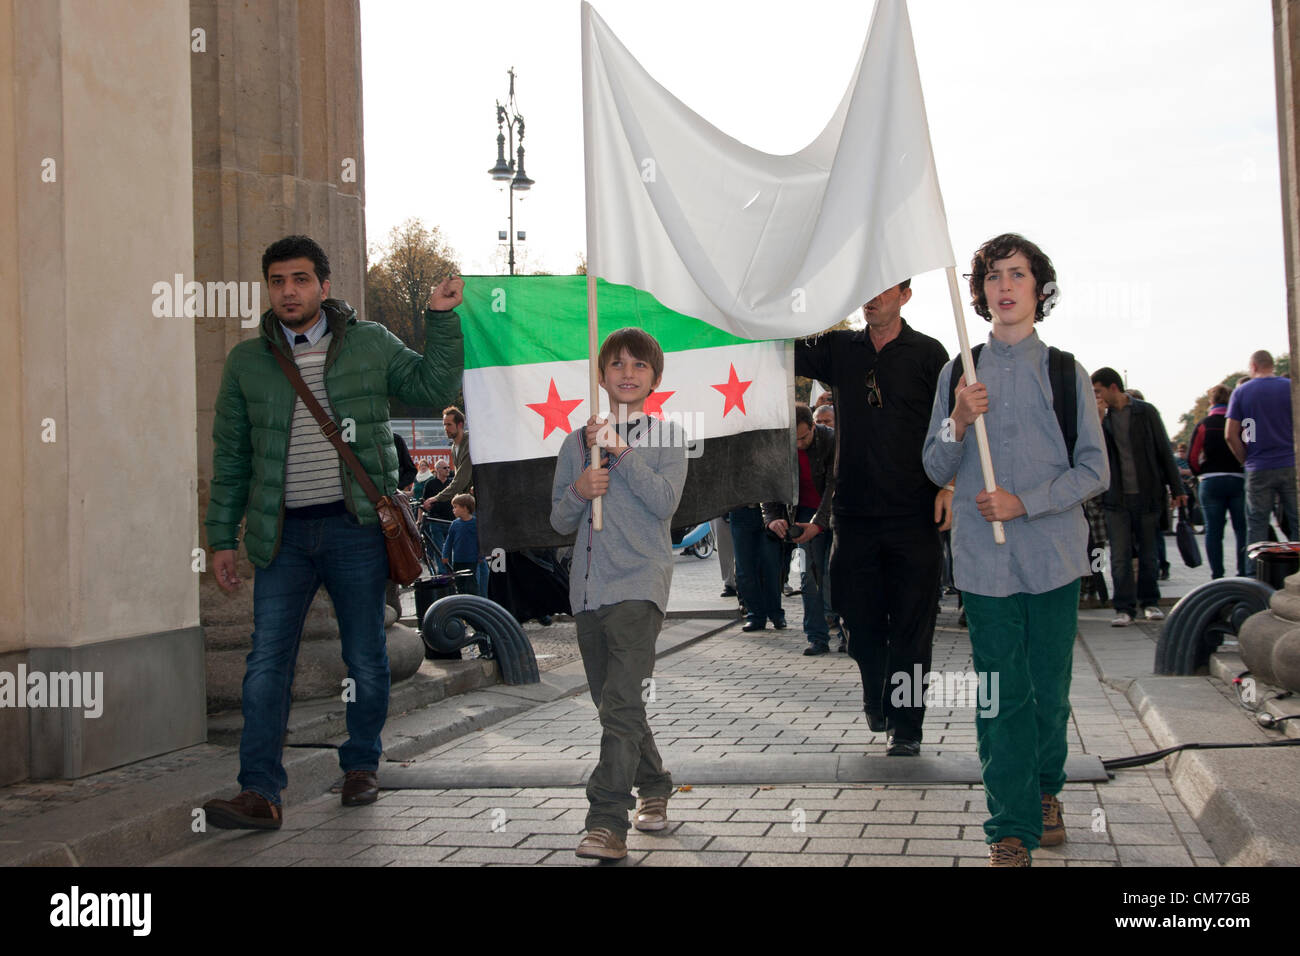 Saturday 20th October 2012. Berlin, Germany. Global Solidarity Day for the Syrian People. - Stock Image